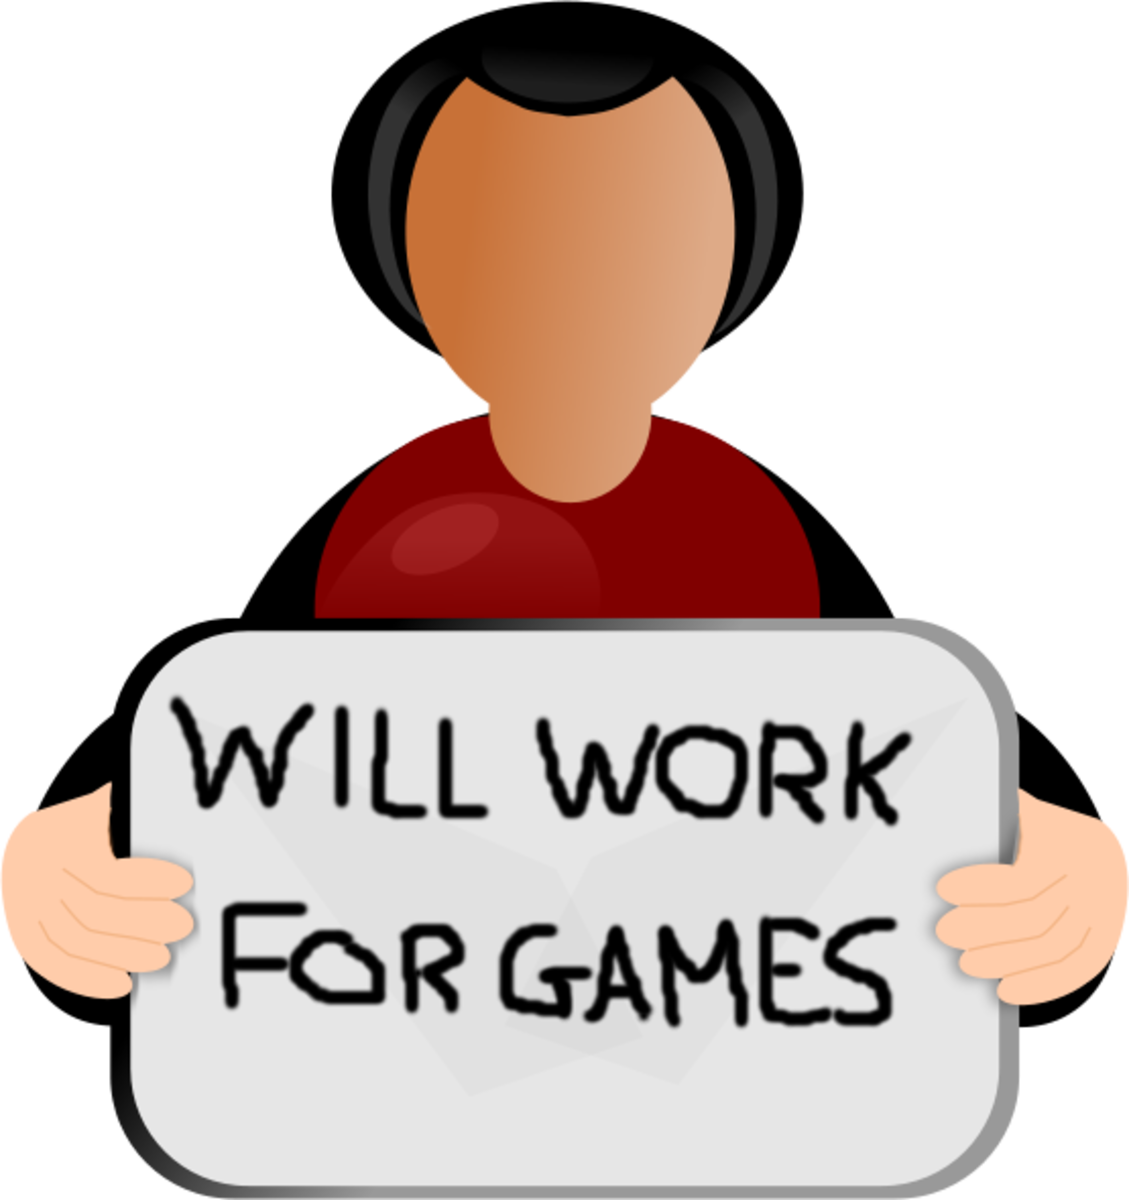 How hard will you work for games?